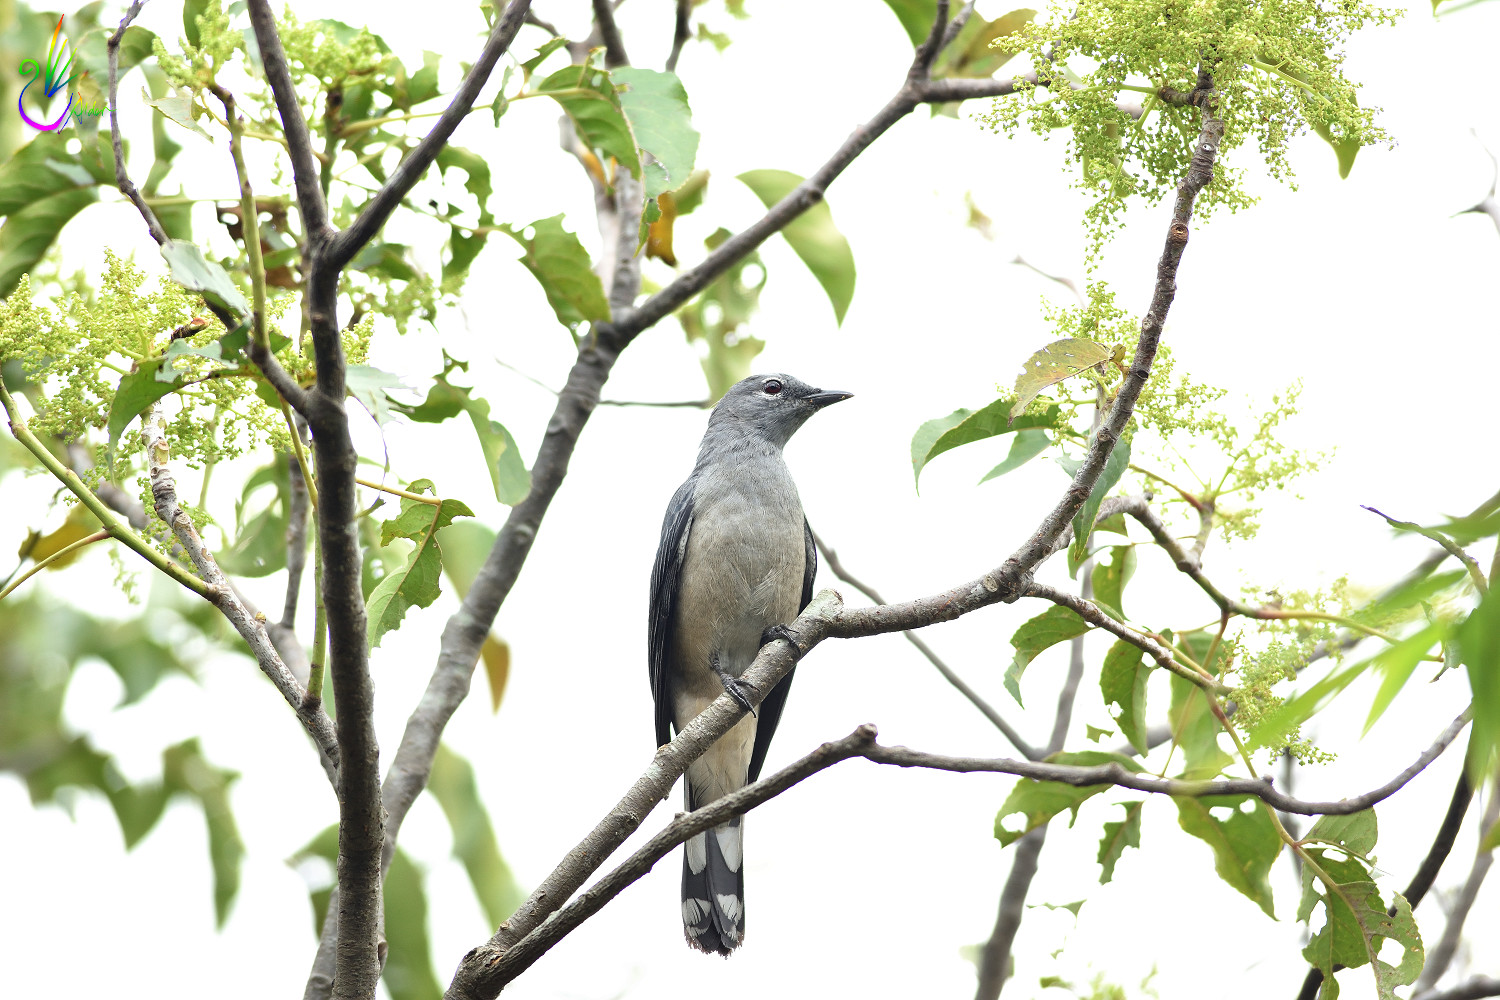 Black-winged_Cuckoo-shrike_8926